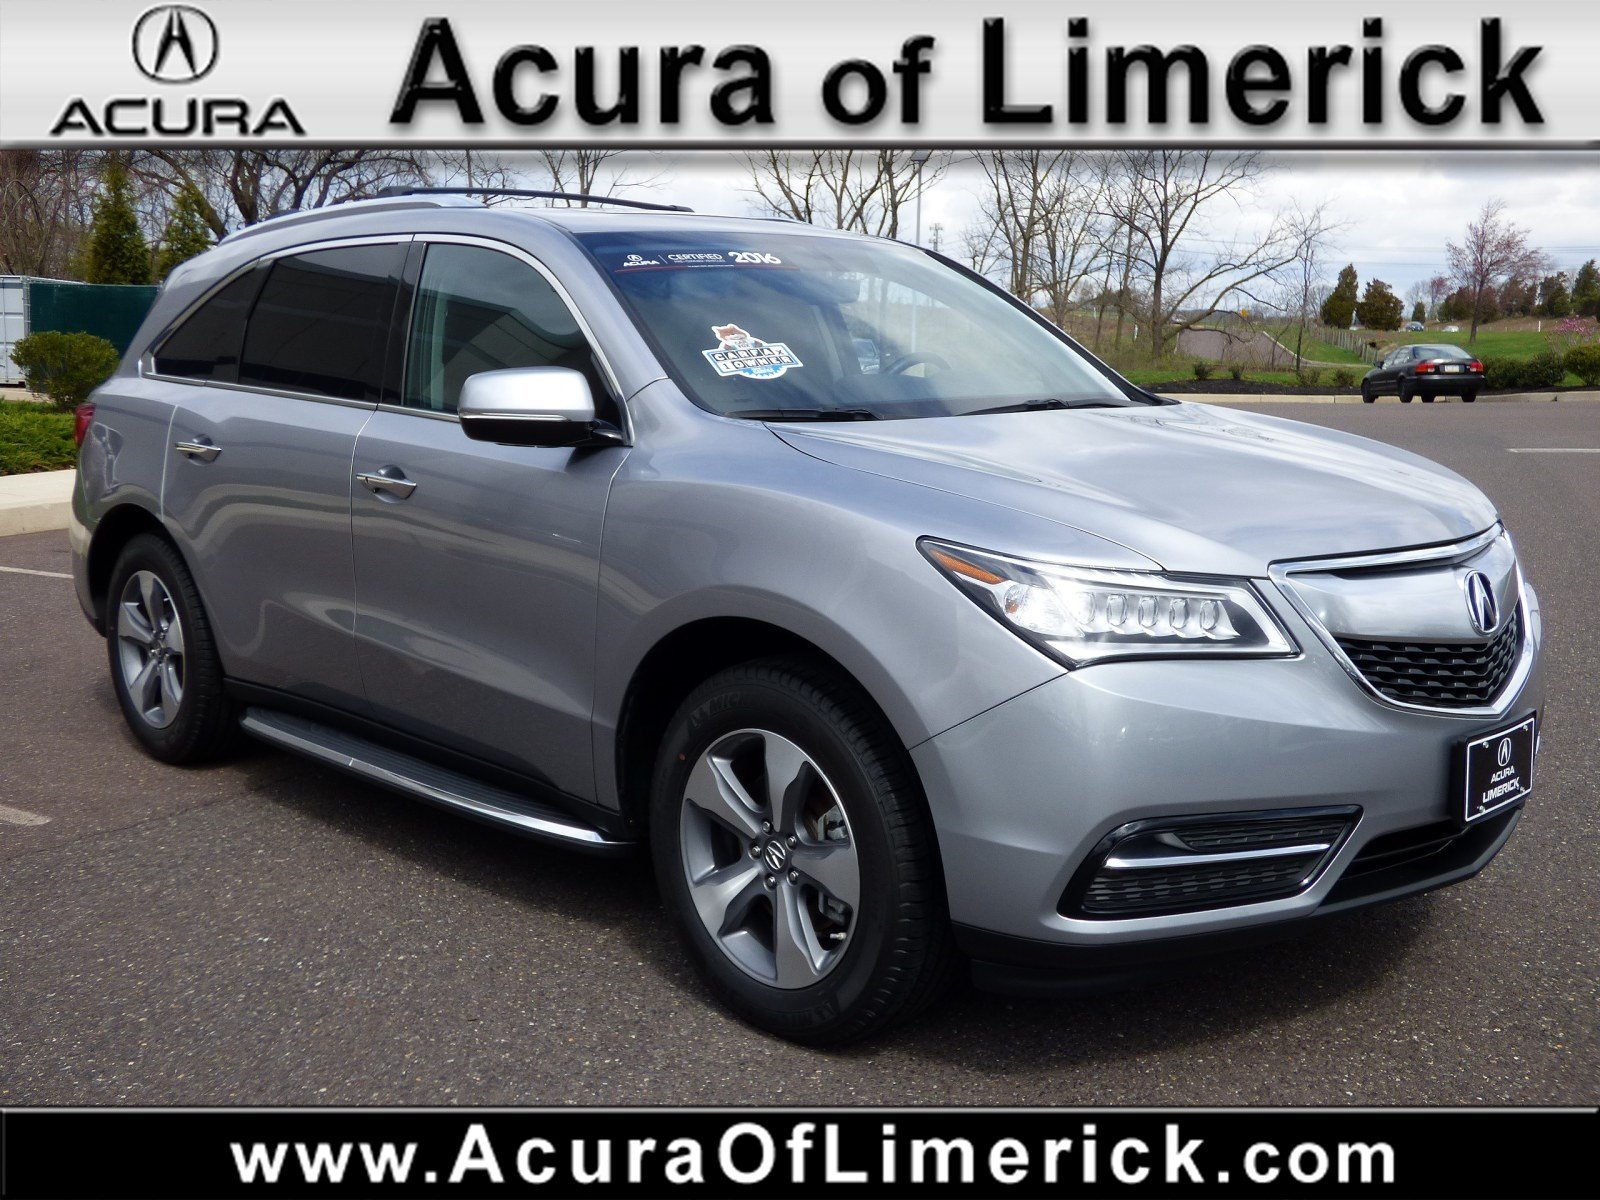 Certified Pre Owned 2016 Acura MDX Base Sport Utility in Limerick